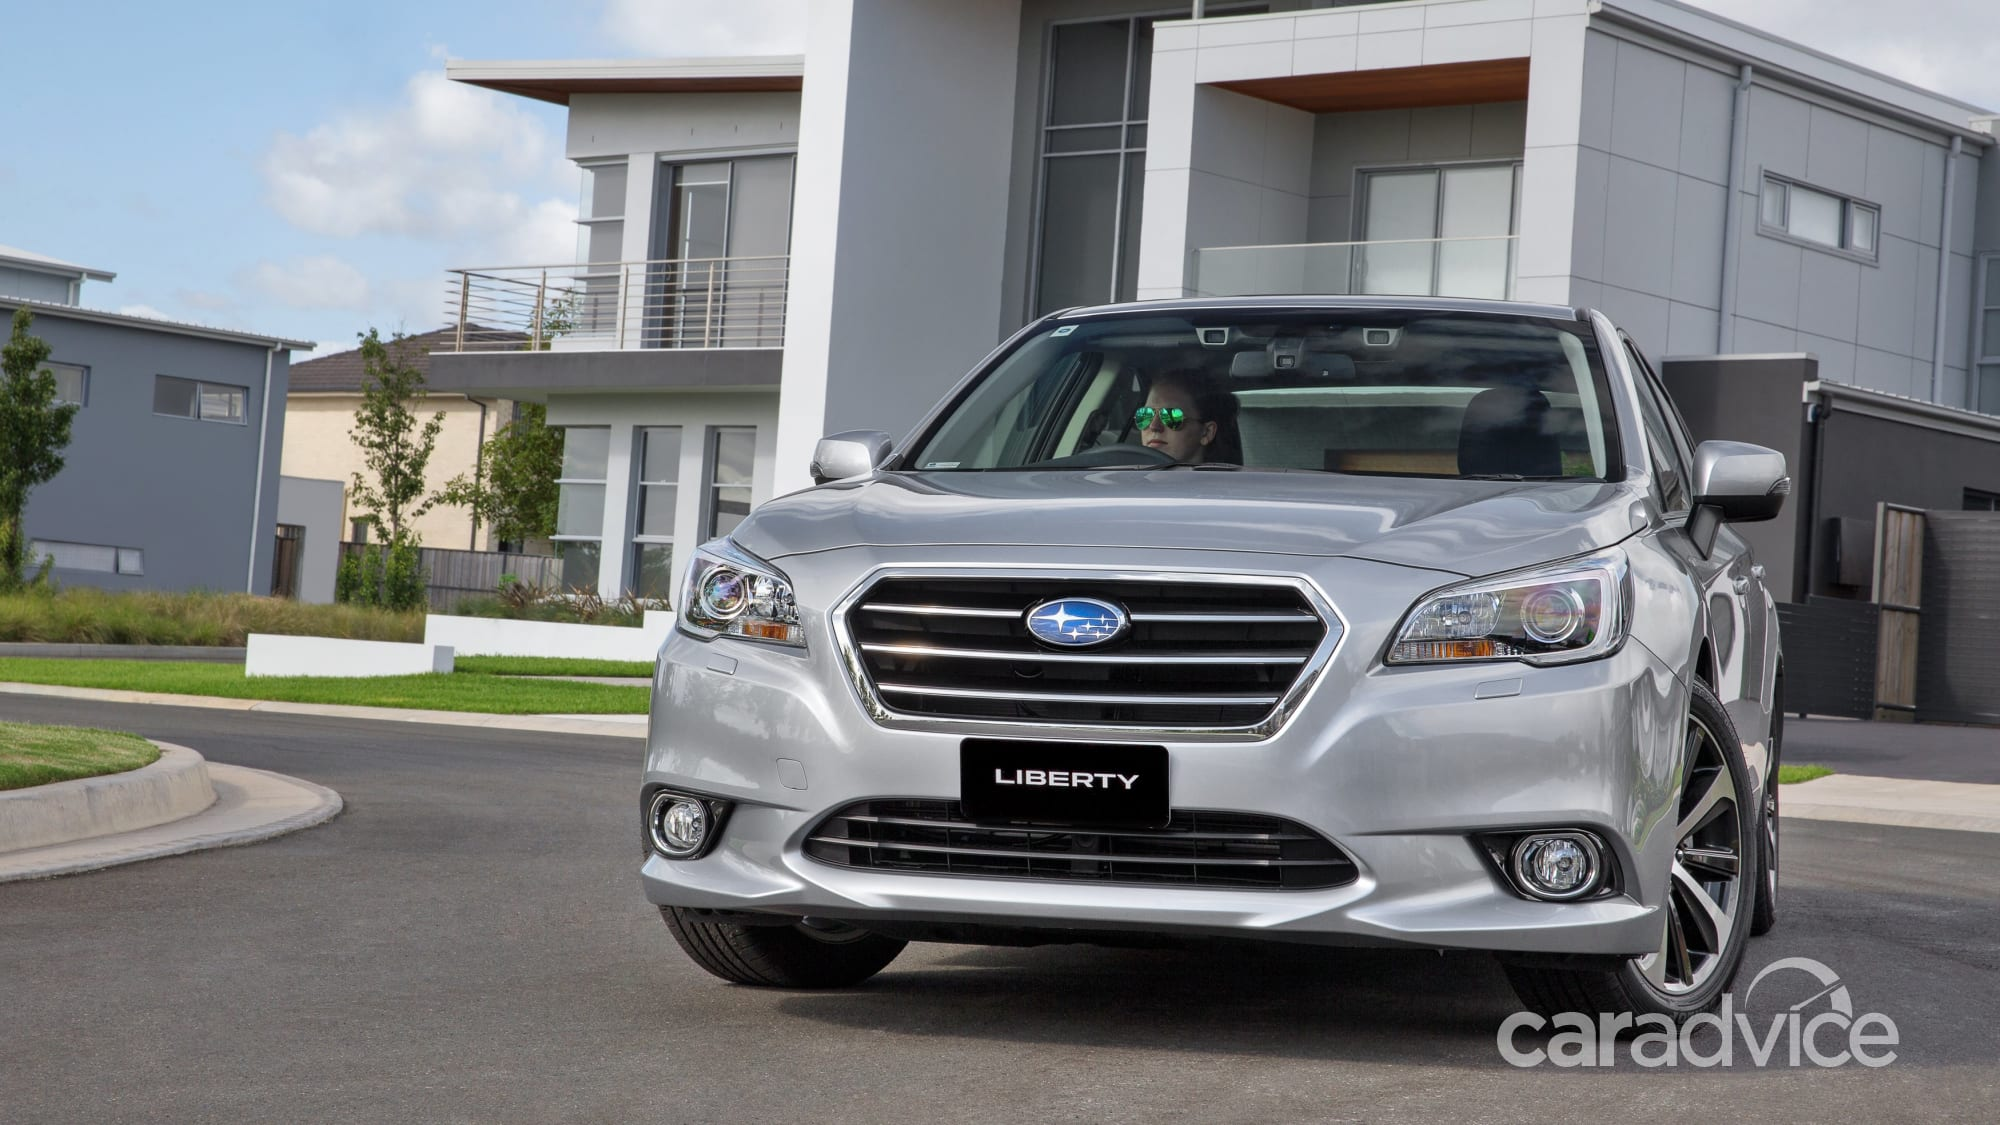 2016 subaru liberty pricing and specifications  caradvice